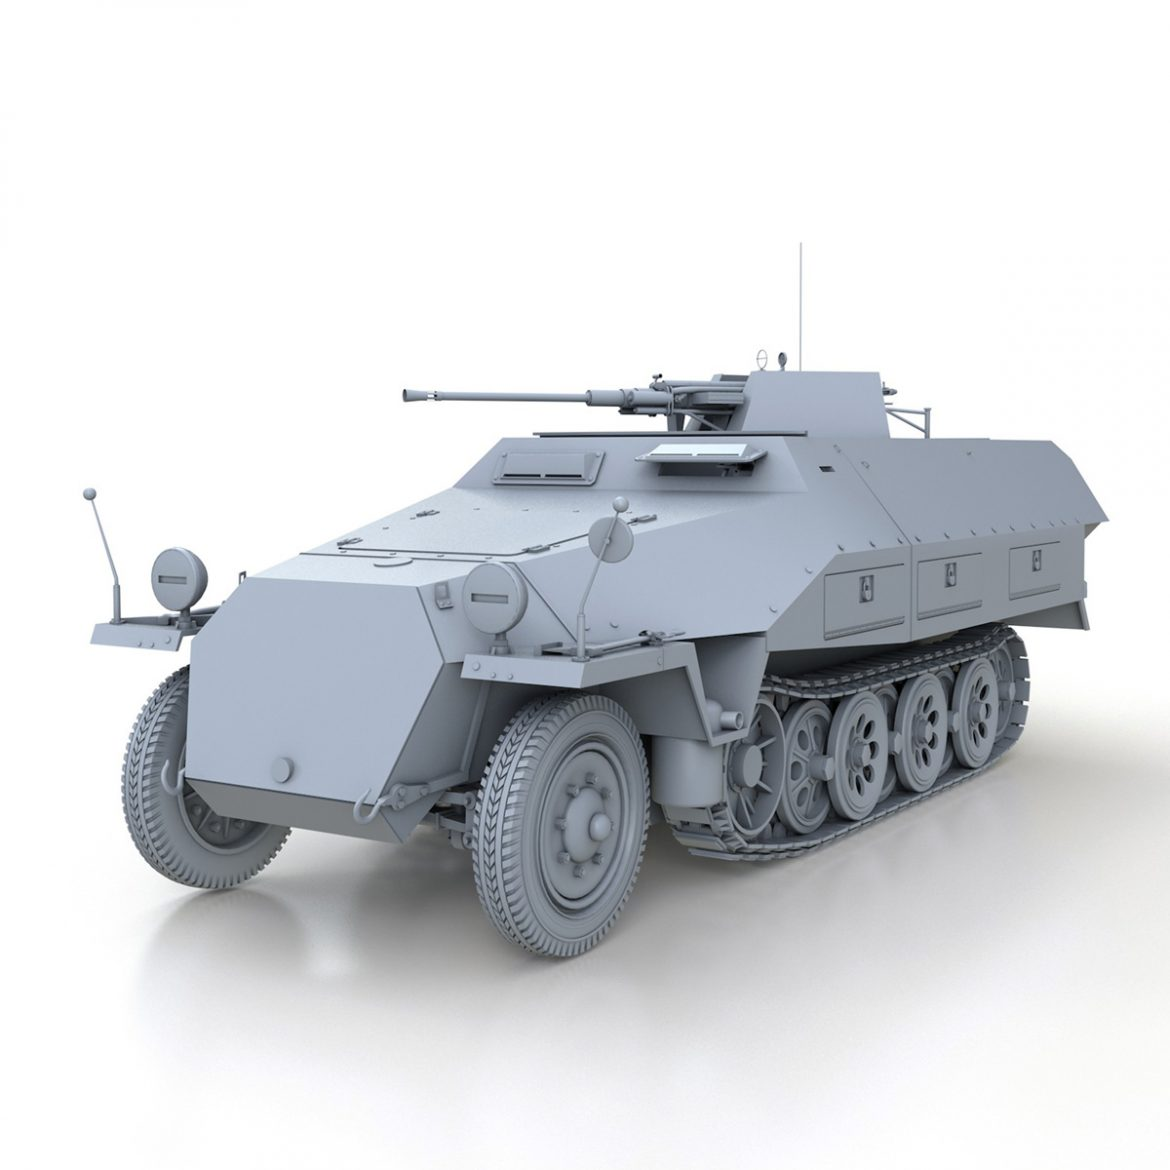 sd.kfz 251/17 ausf.d – anti-aircraft vehicle 3d model 3ds fbx c4d lwo obj 302947